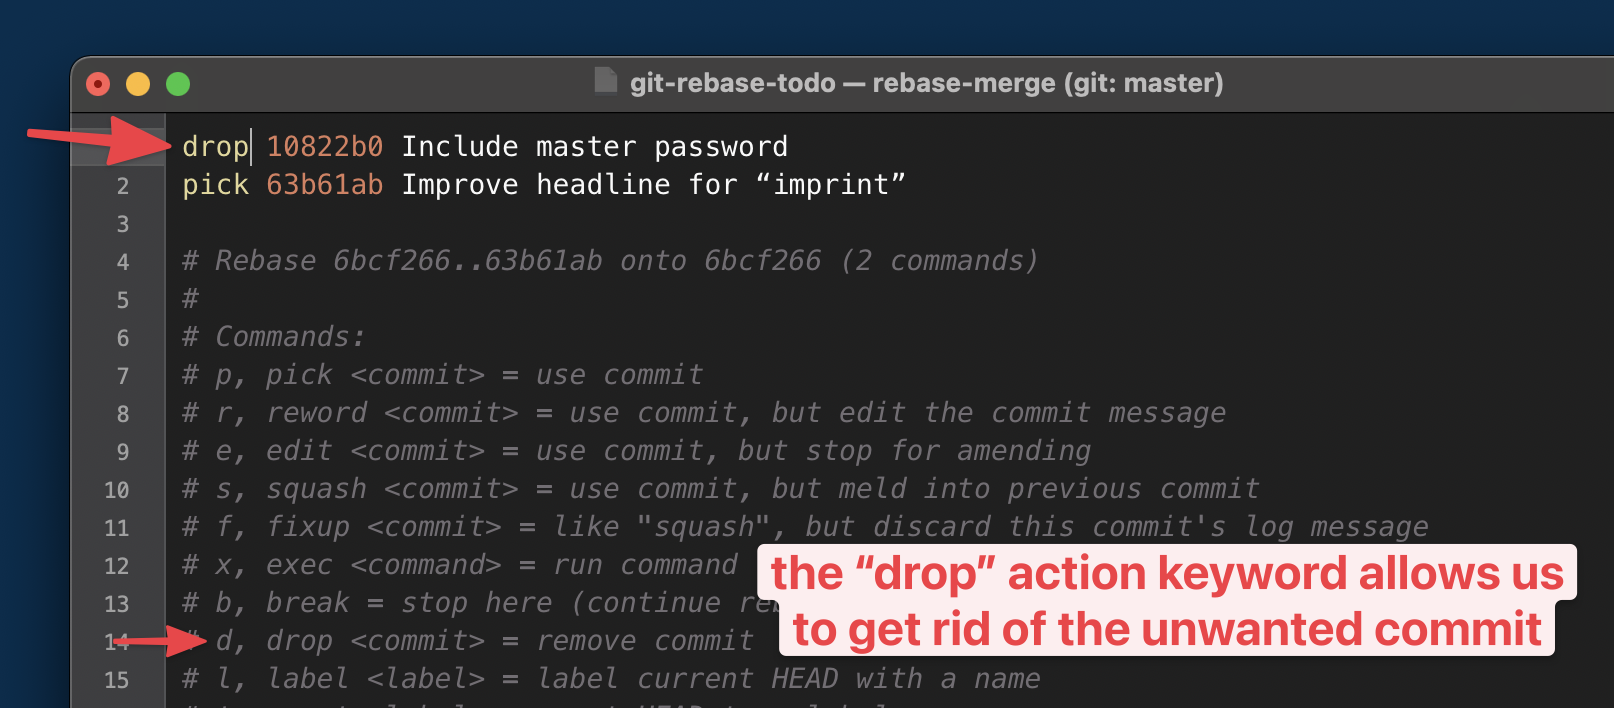 Marking the commit we want to delete